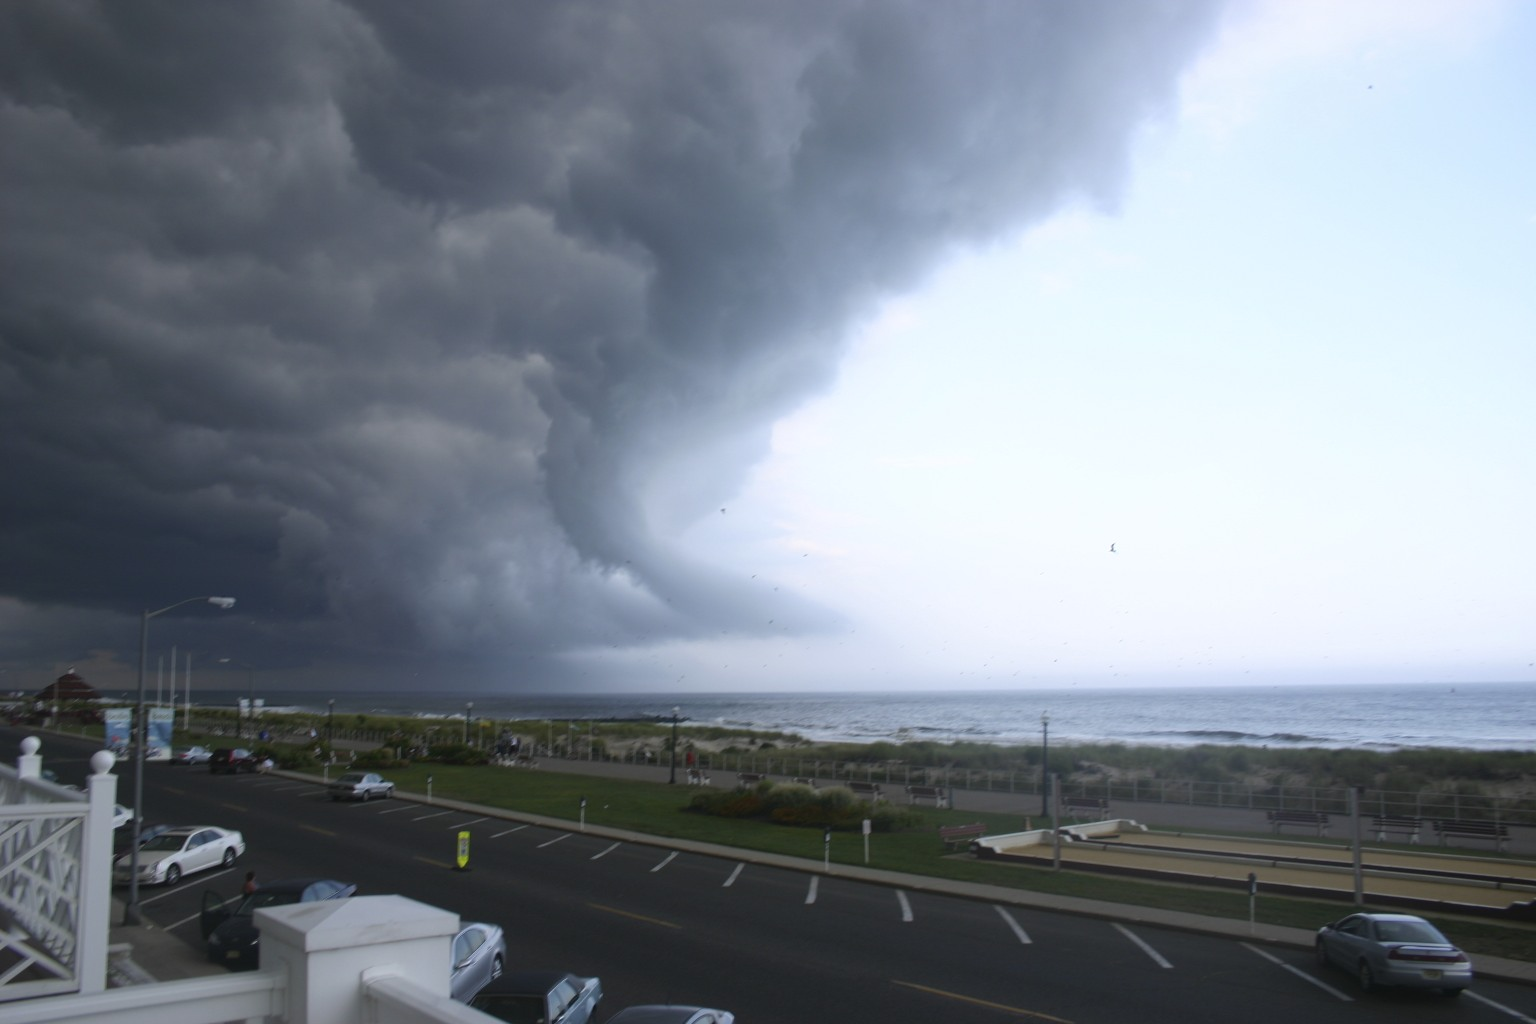 File:Storm Coming In - panoramio.jpg - Wikimedia Commons